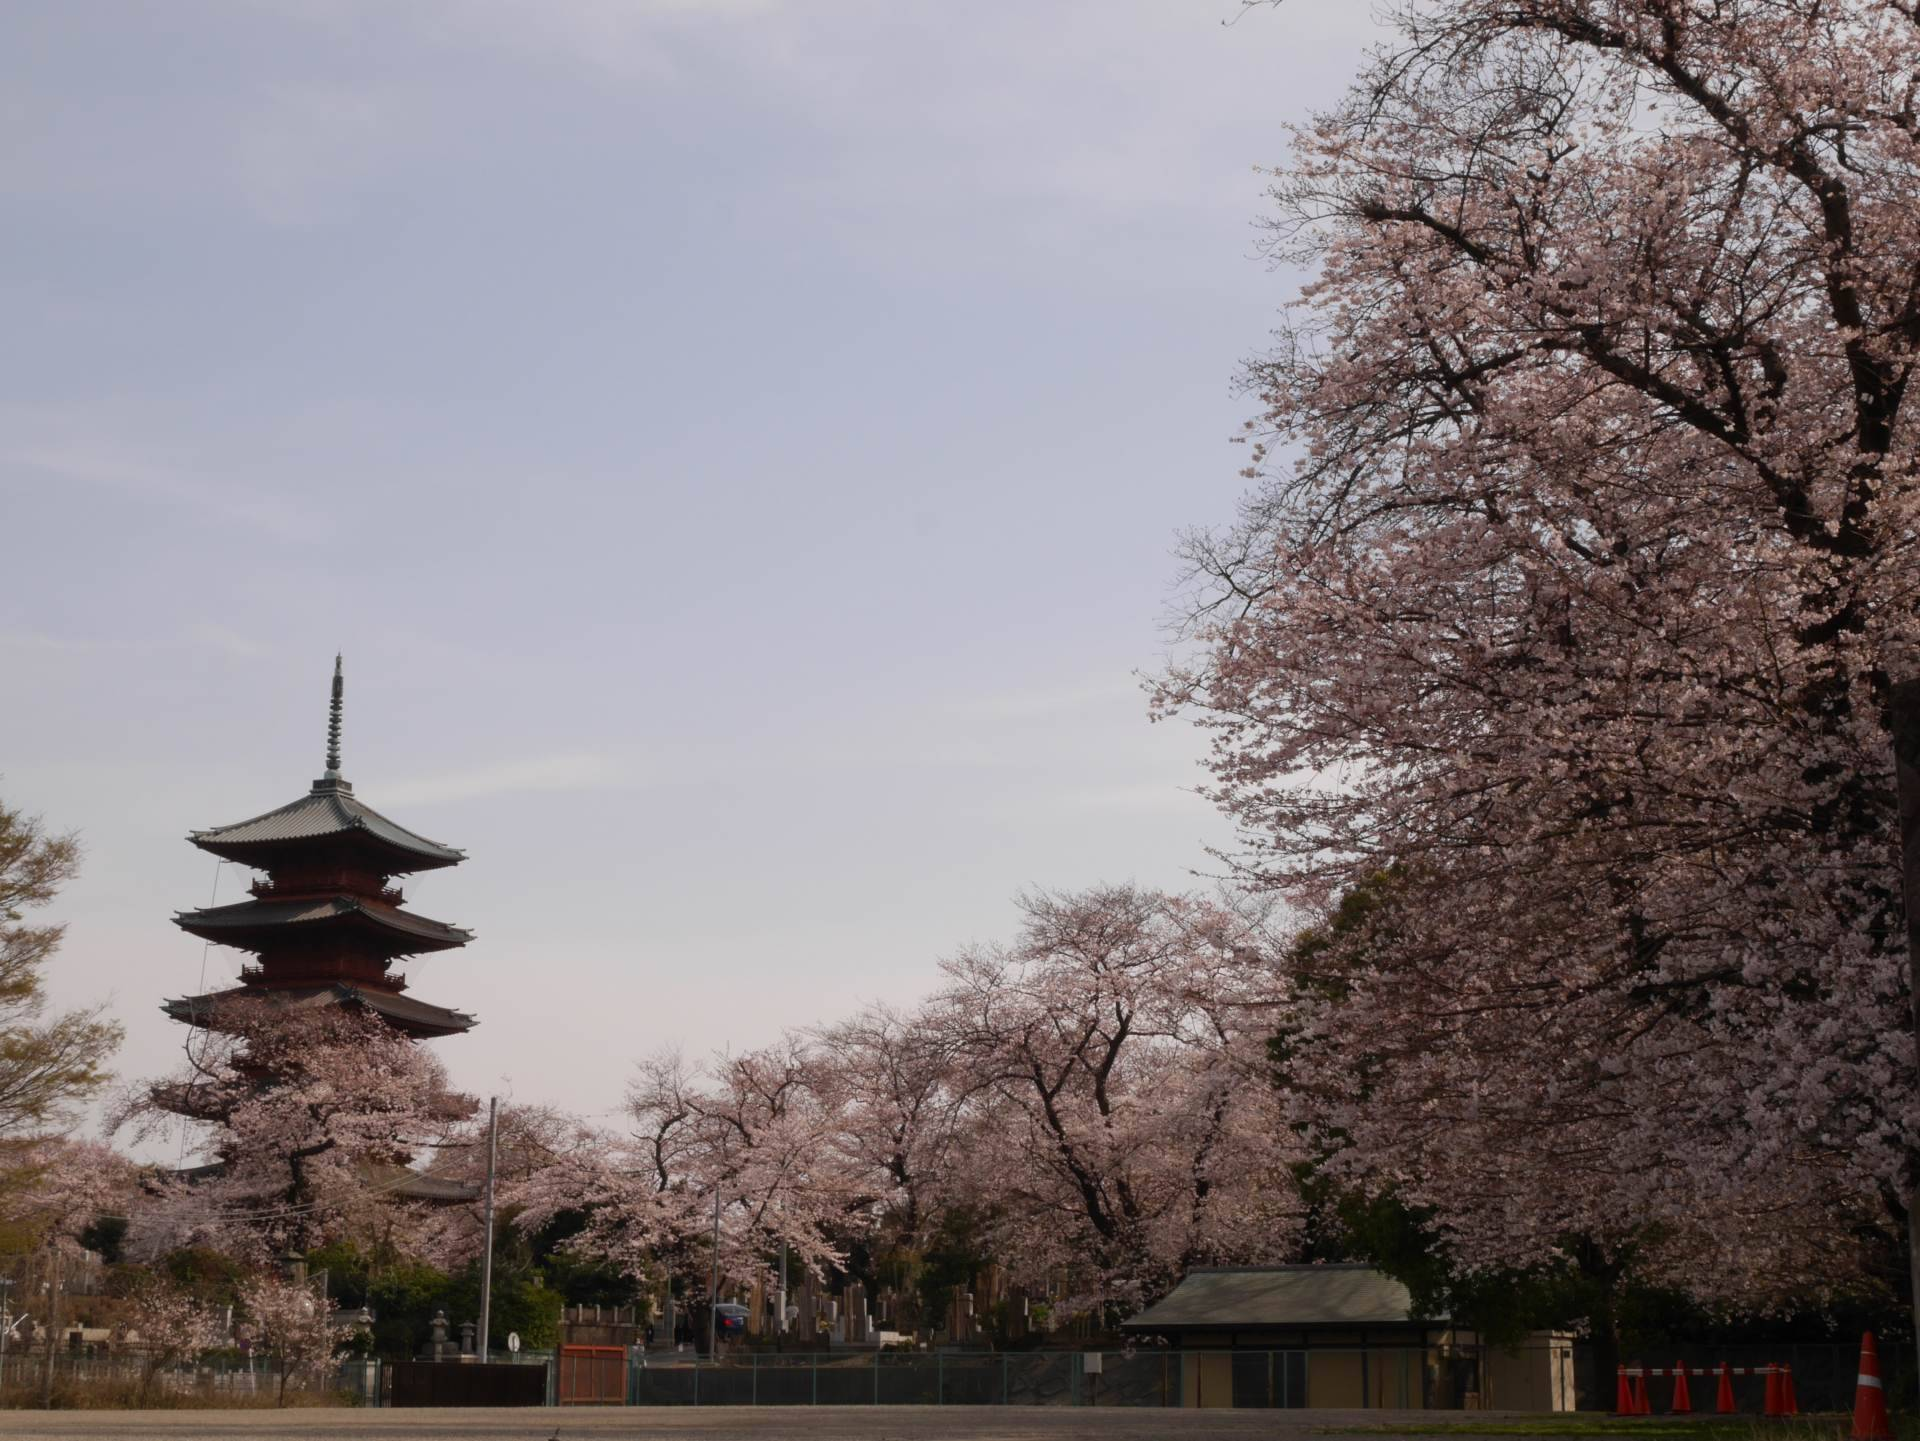 Scenic view of a five-storied pagoda embraced by cherry blossoms